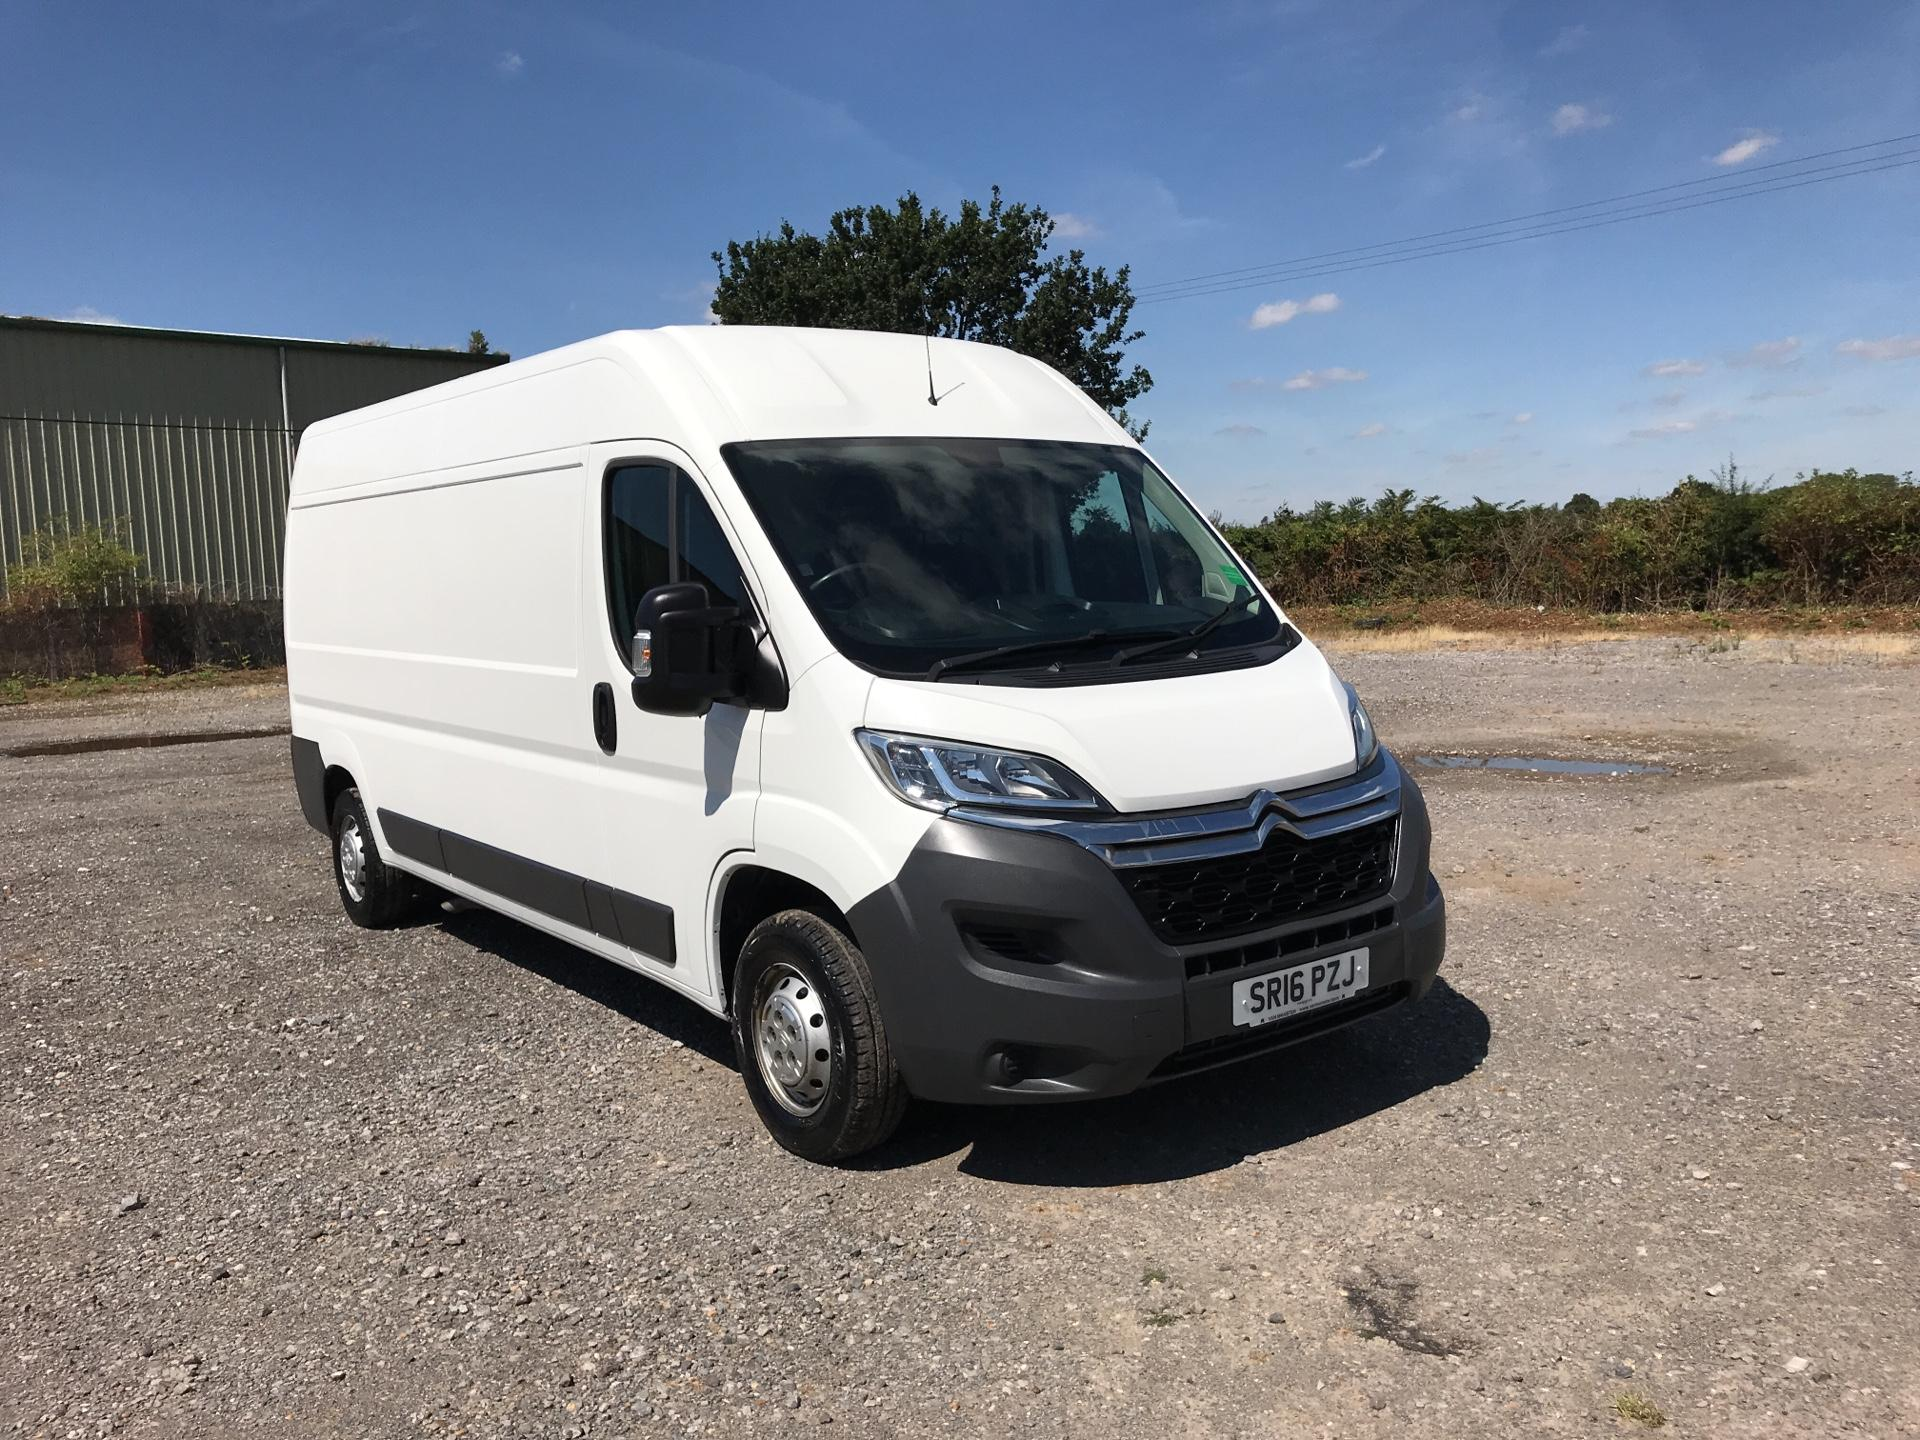 2016 Citroen Relay 2.2 Hdi H2 Van 130Ps Enterprise (SR16PZJ)